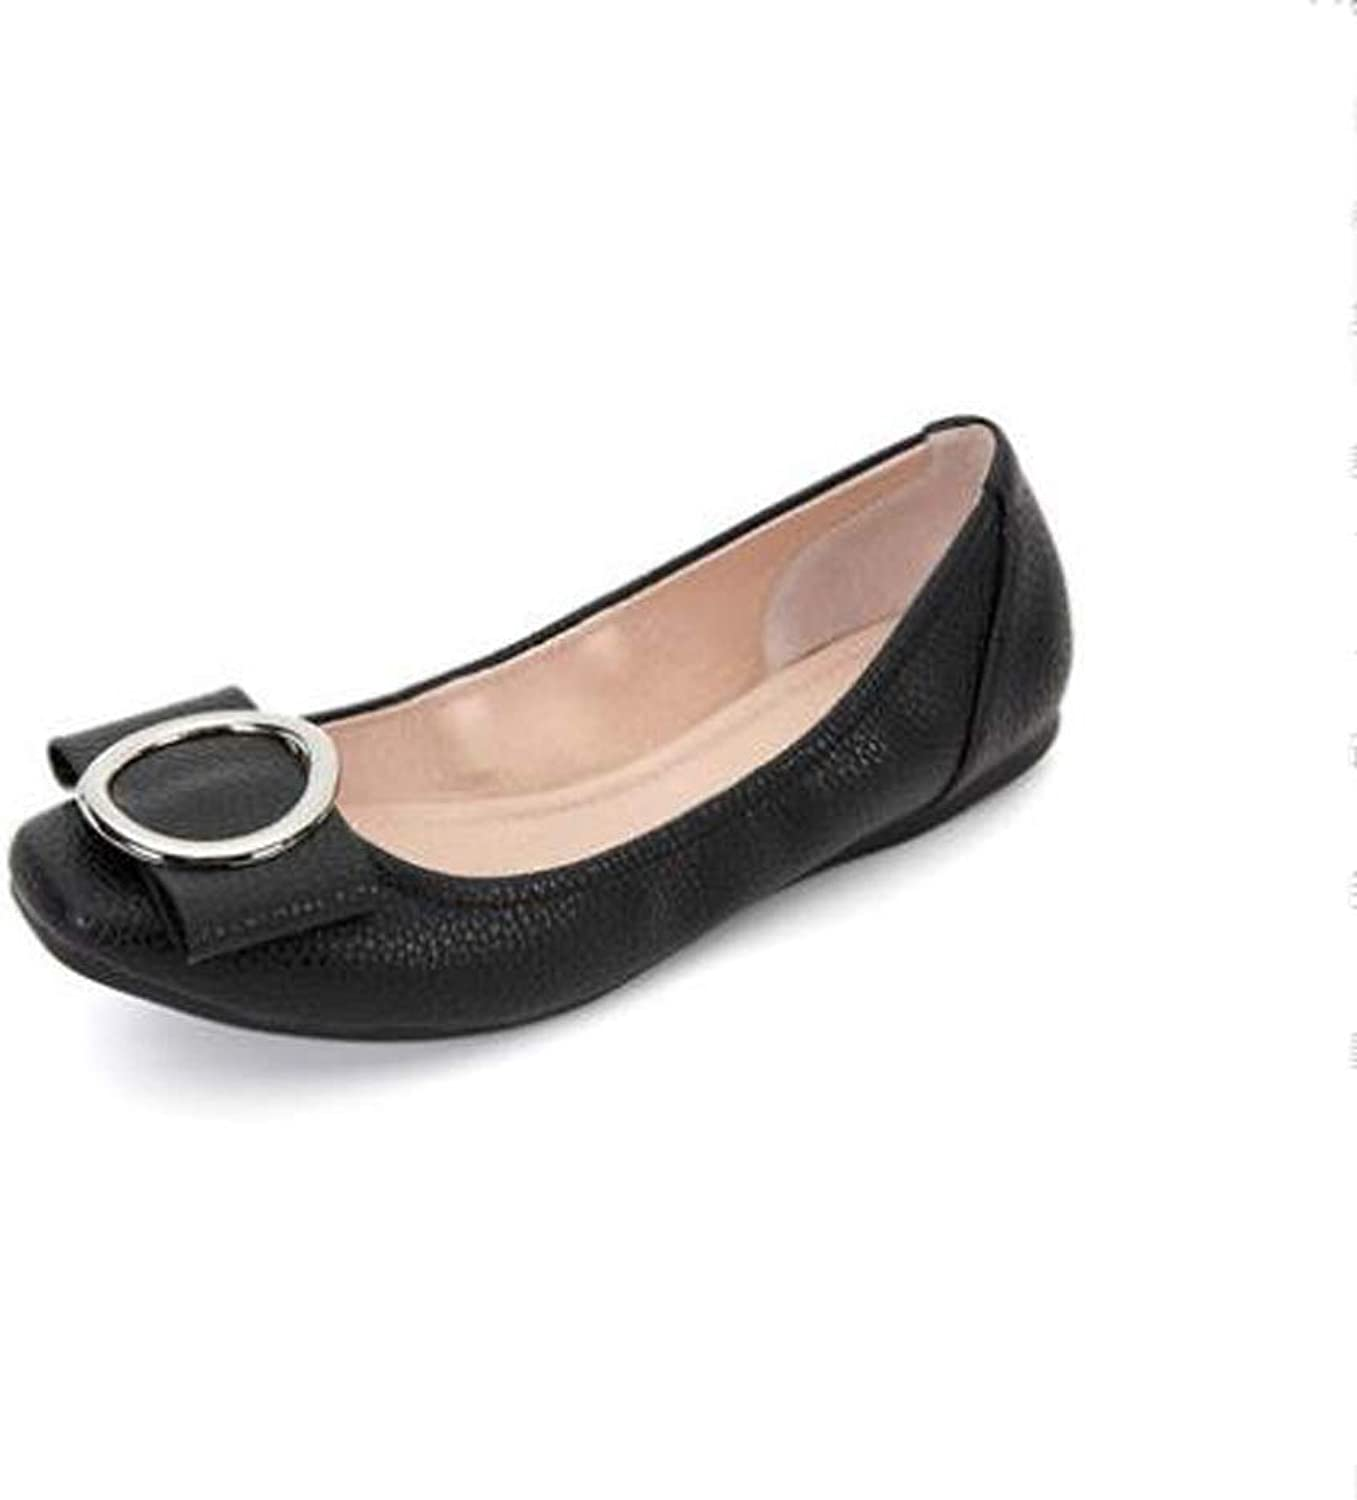 Women's shoes Autumn New Shallow Mouth Low with Commuter Metal Buckle Square Head Set Flat shoes